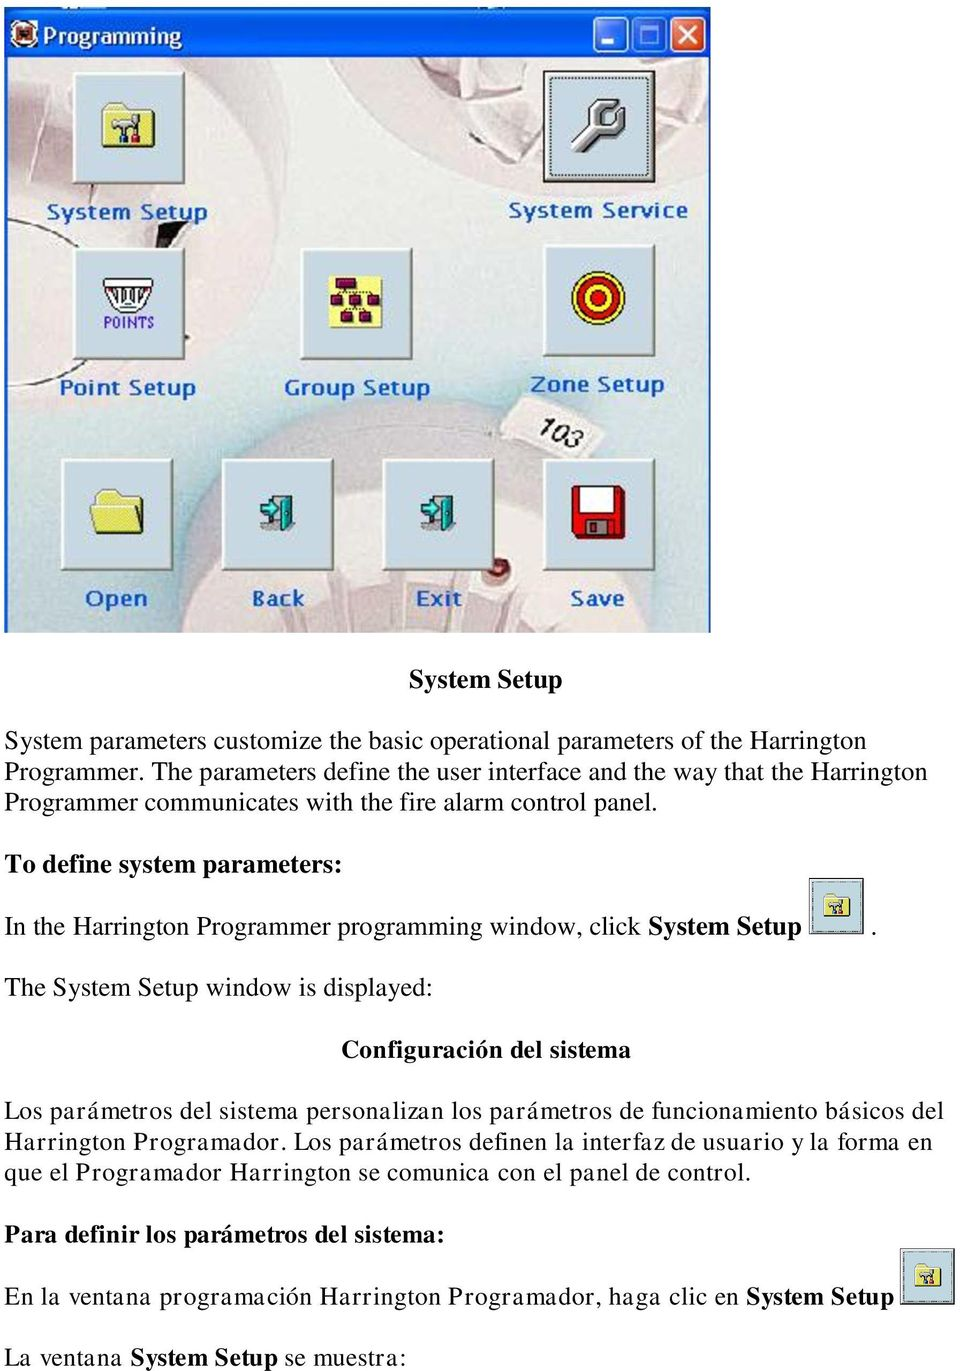 To define system parameters: In the Harrington Programmer programming window, click System Setup.